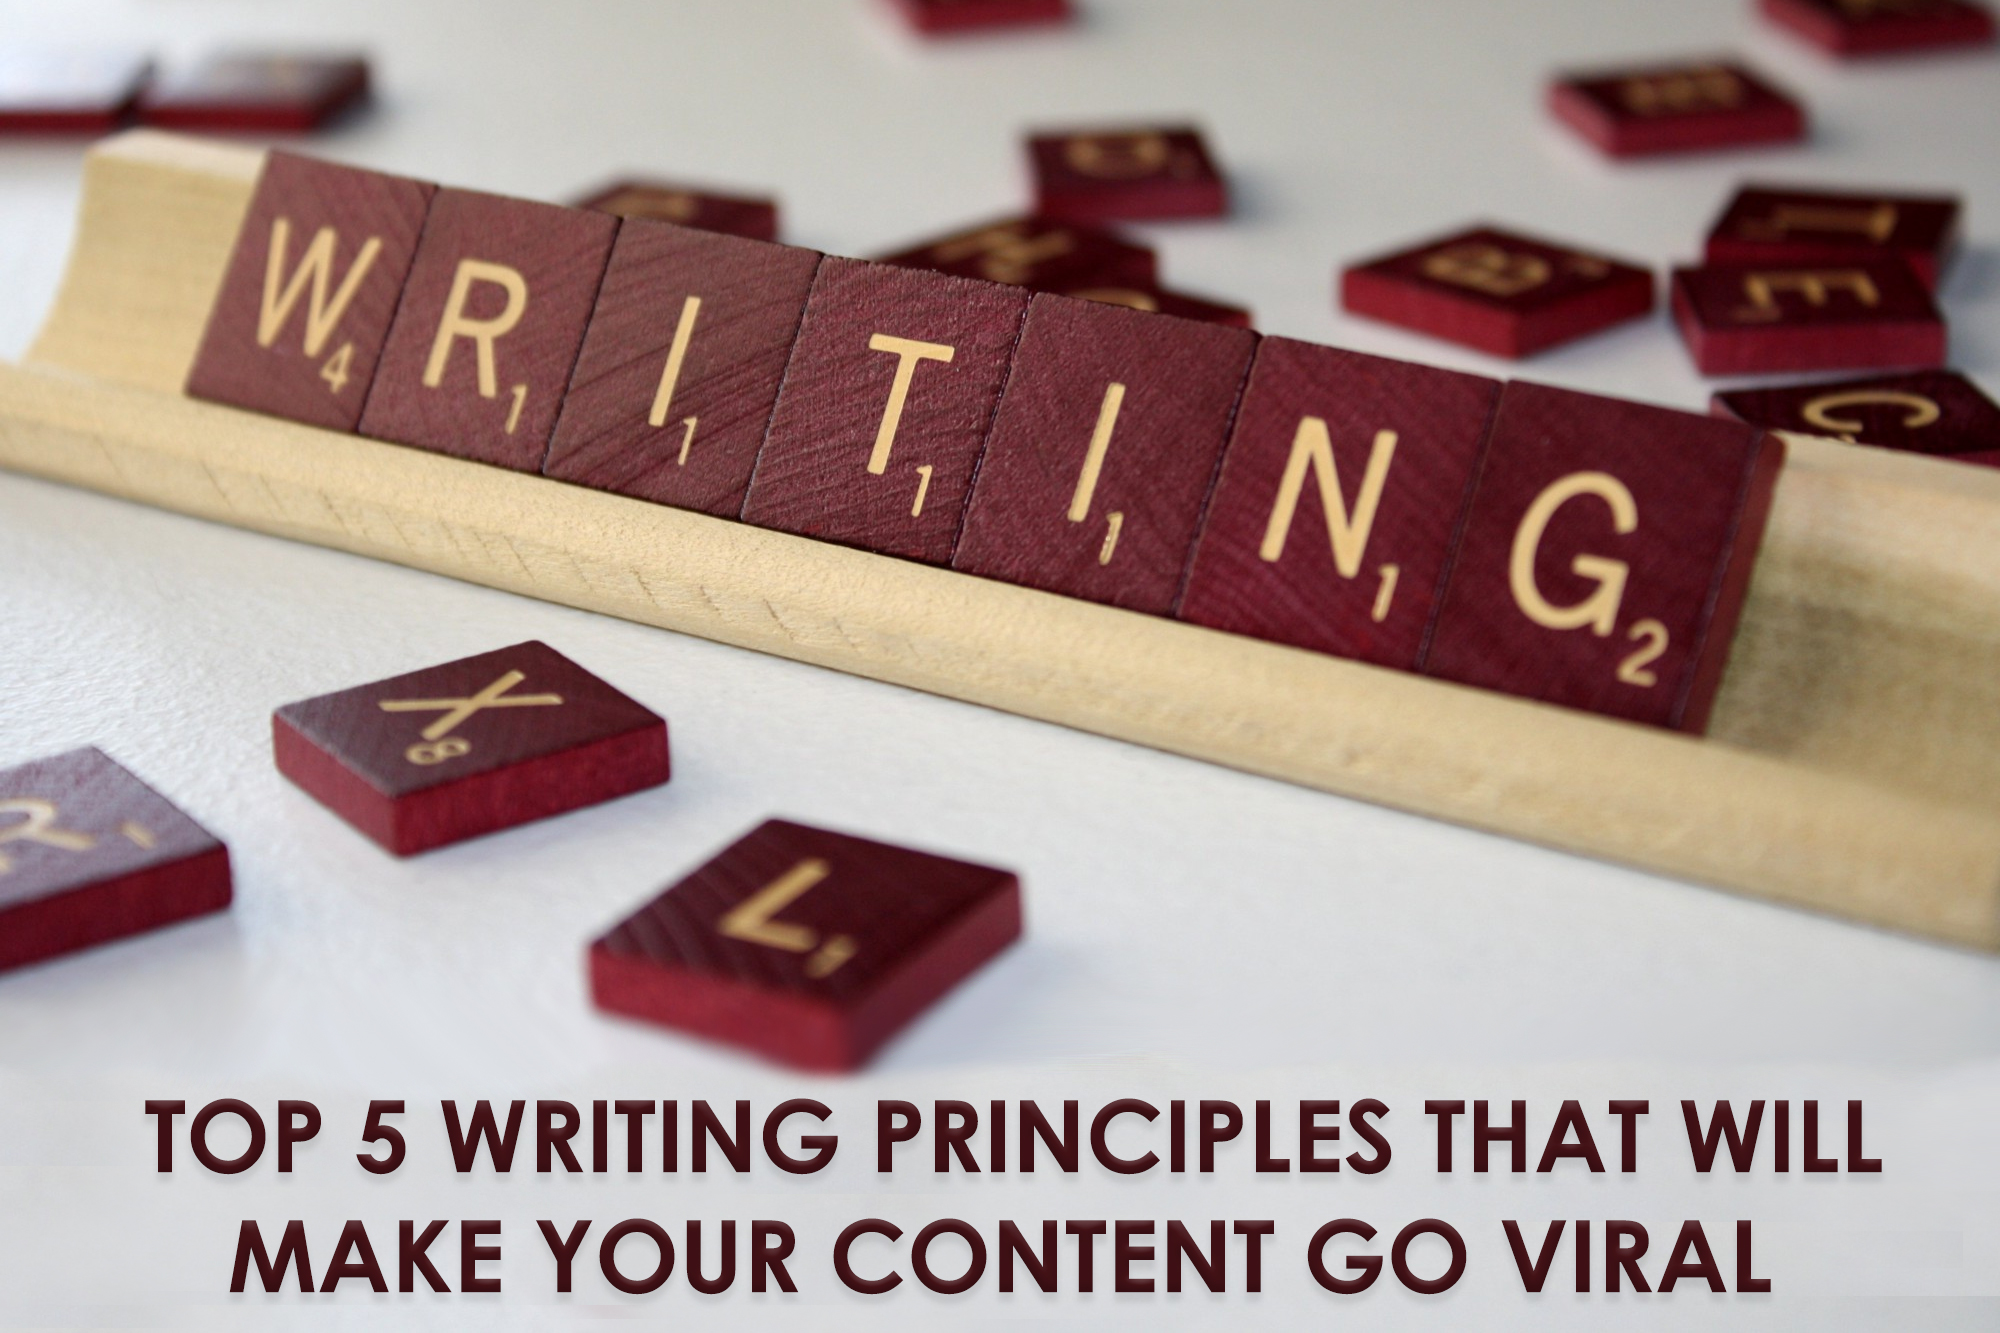 Top 5 Writing Principles That Will Make Your Content Go Viral